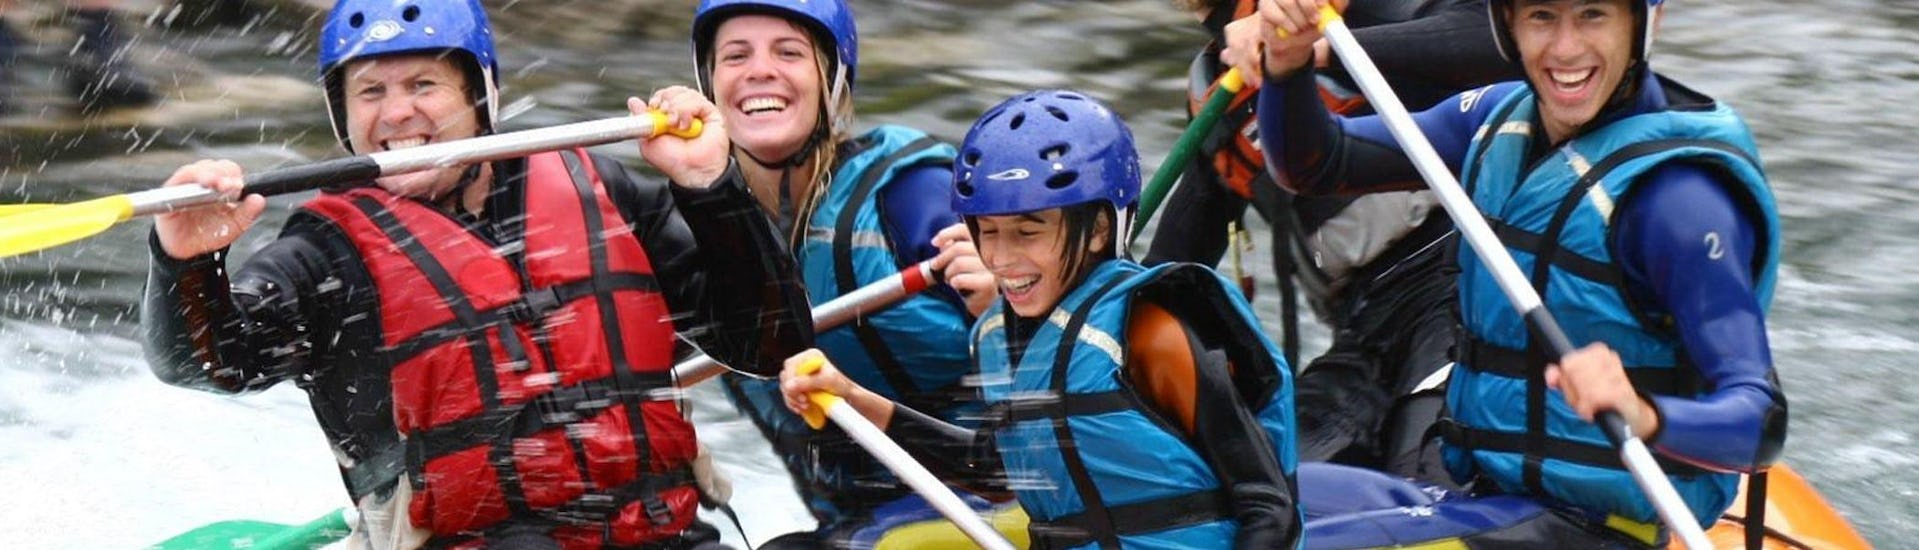 A family is having fun during their Rafting in Gave de Pau - Classic activity with Ohlala Eaux Vives.